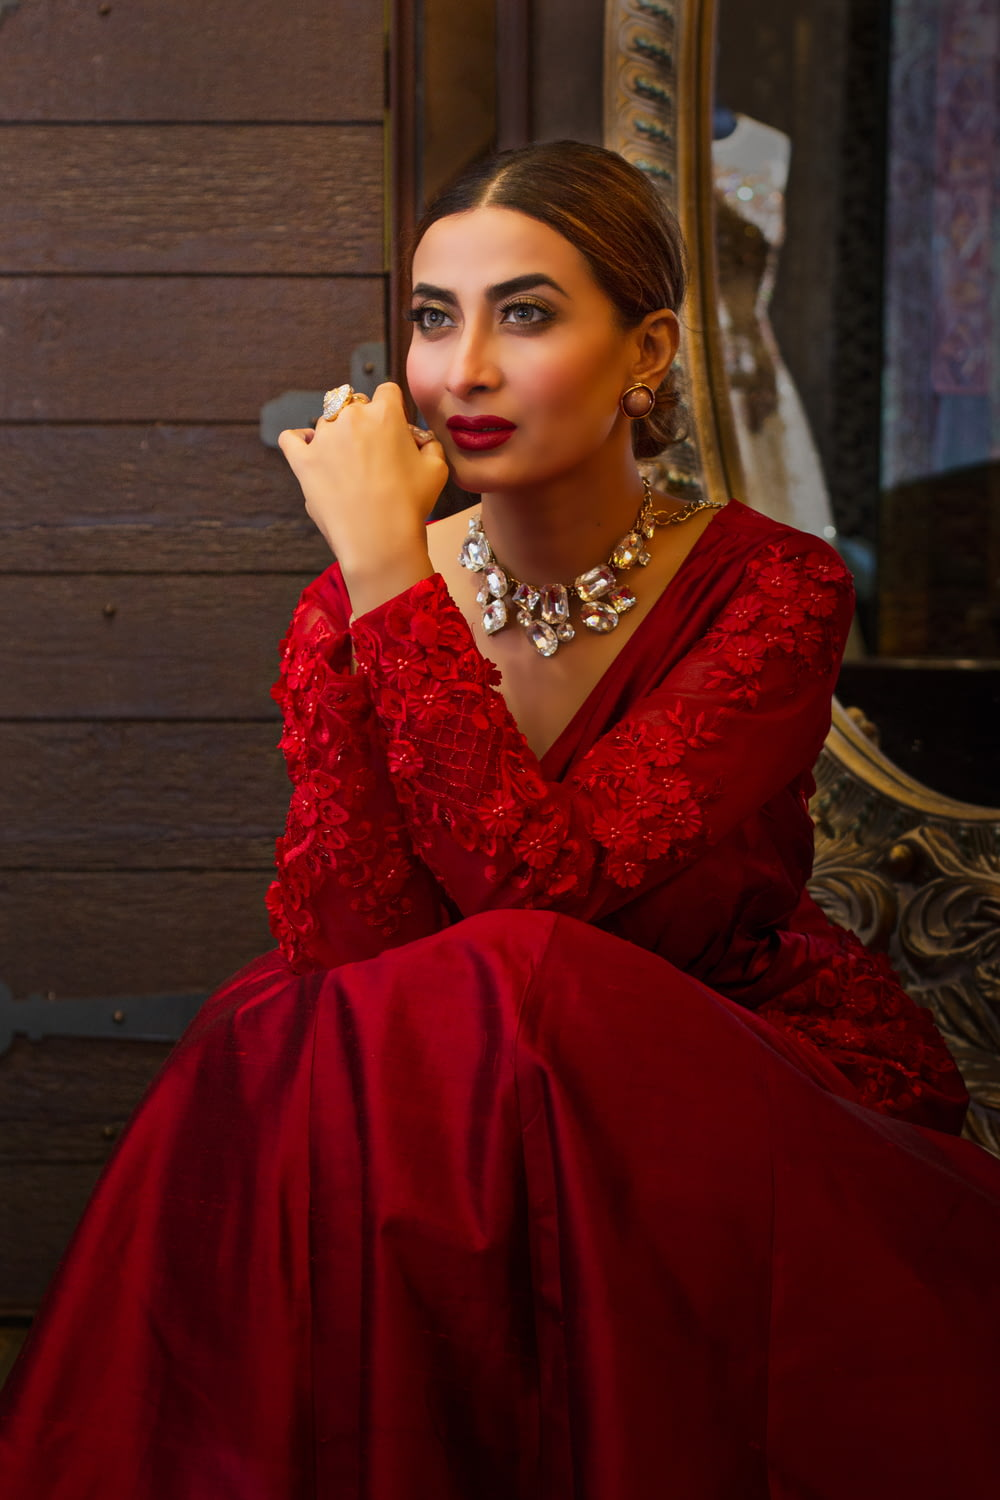 woman in red dress sitting on brown wooden bench